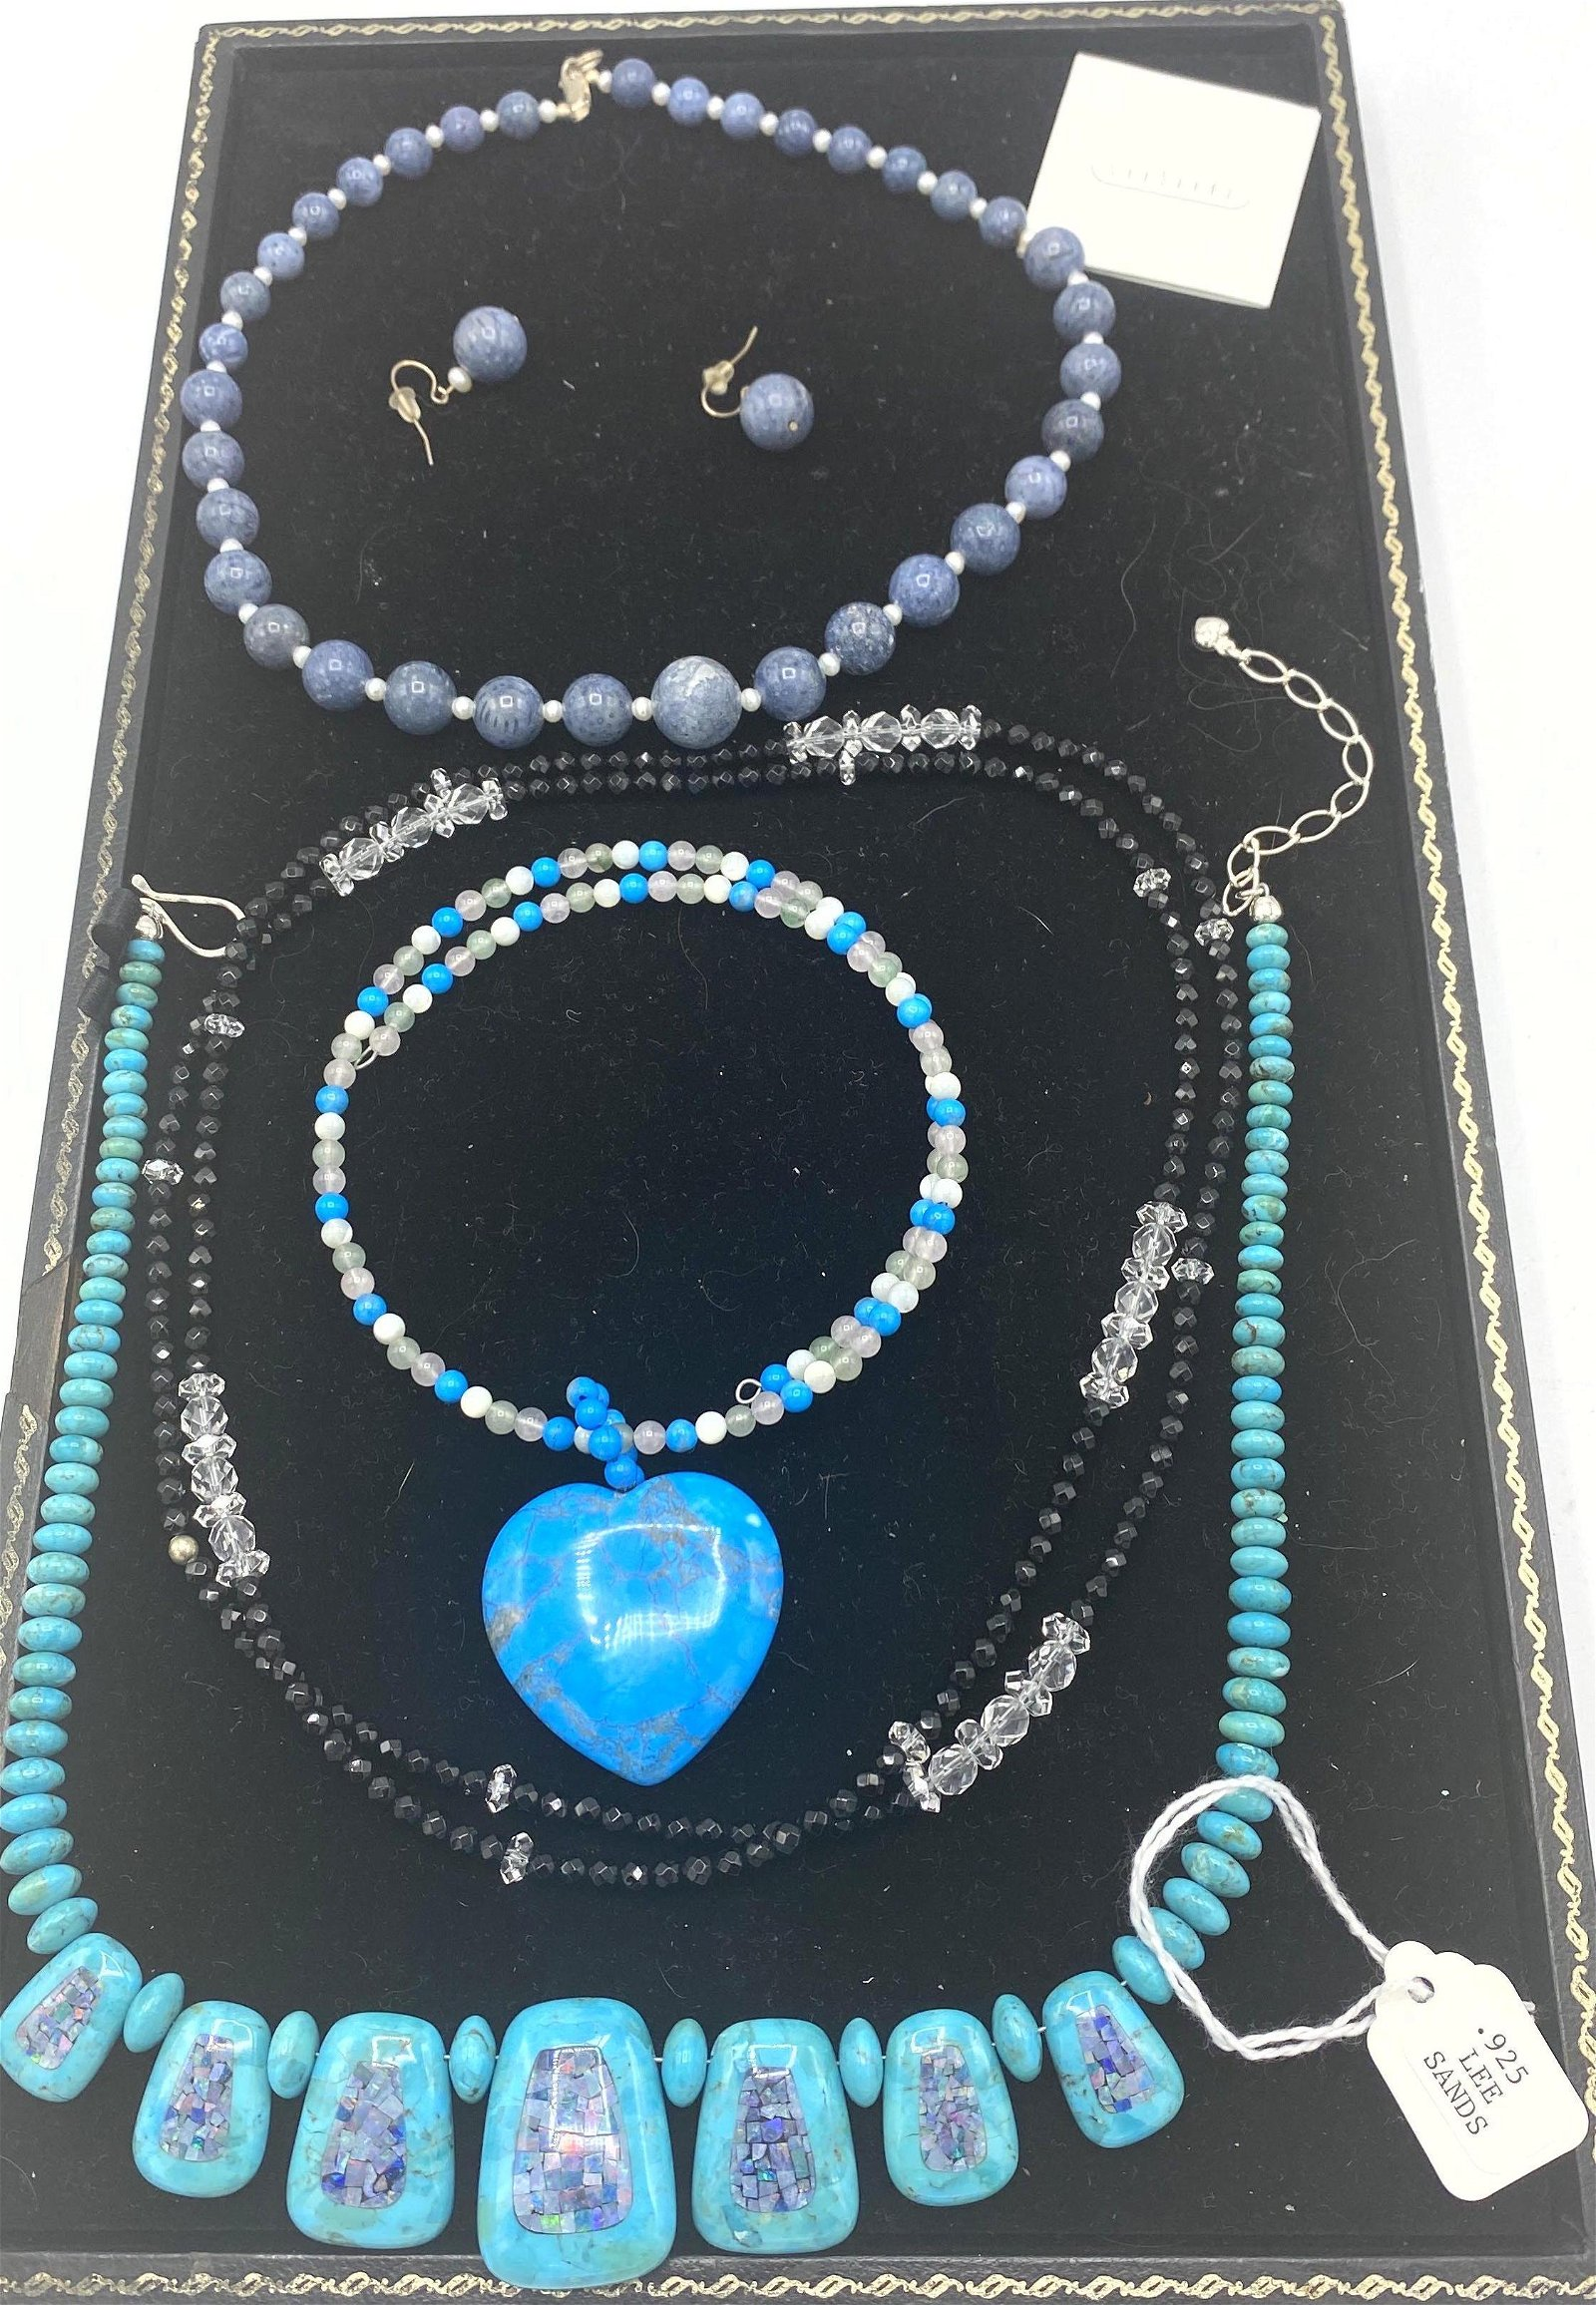 5pc Bead Necklaces. LEE SANDS. Bead necklace with match